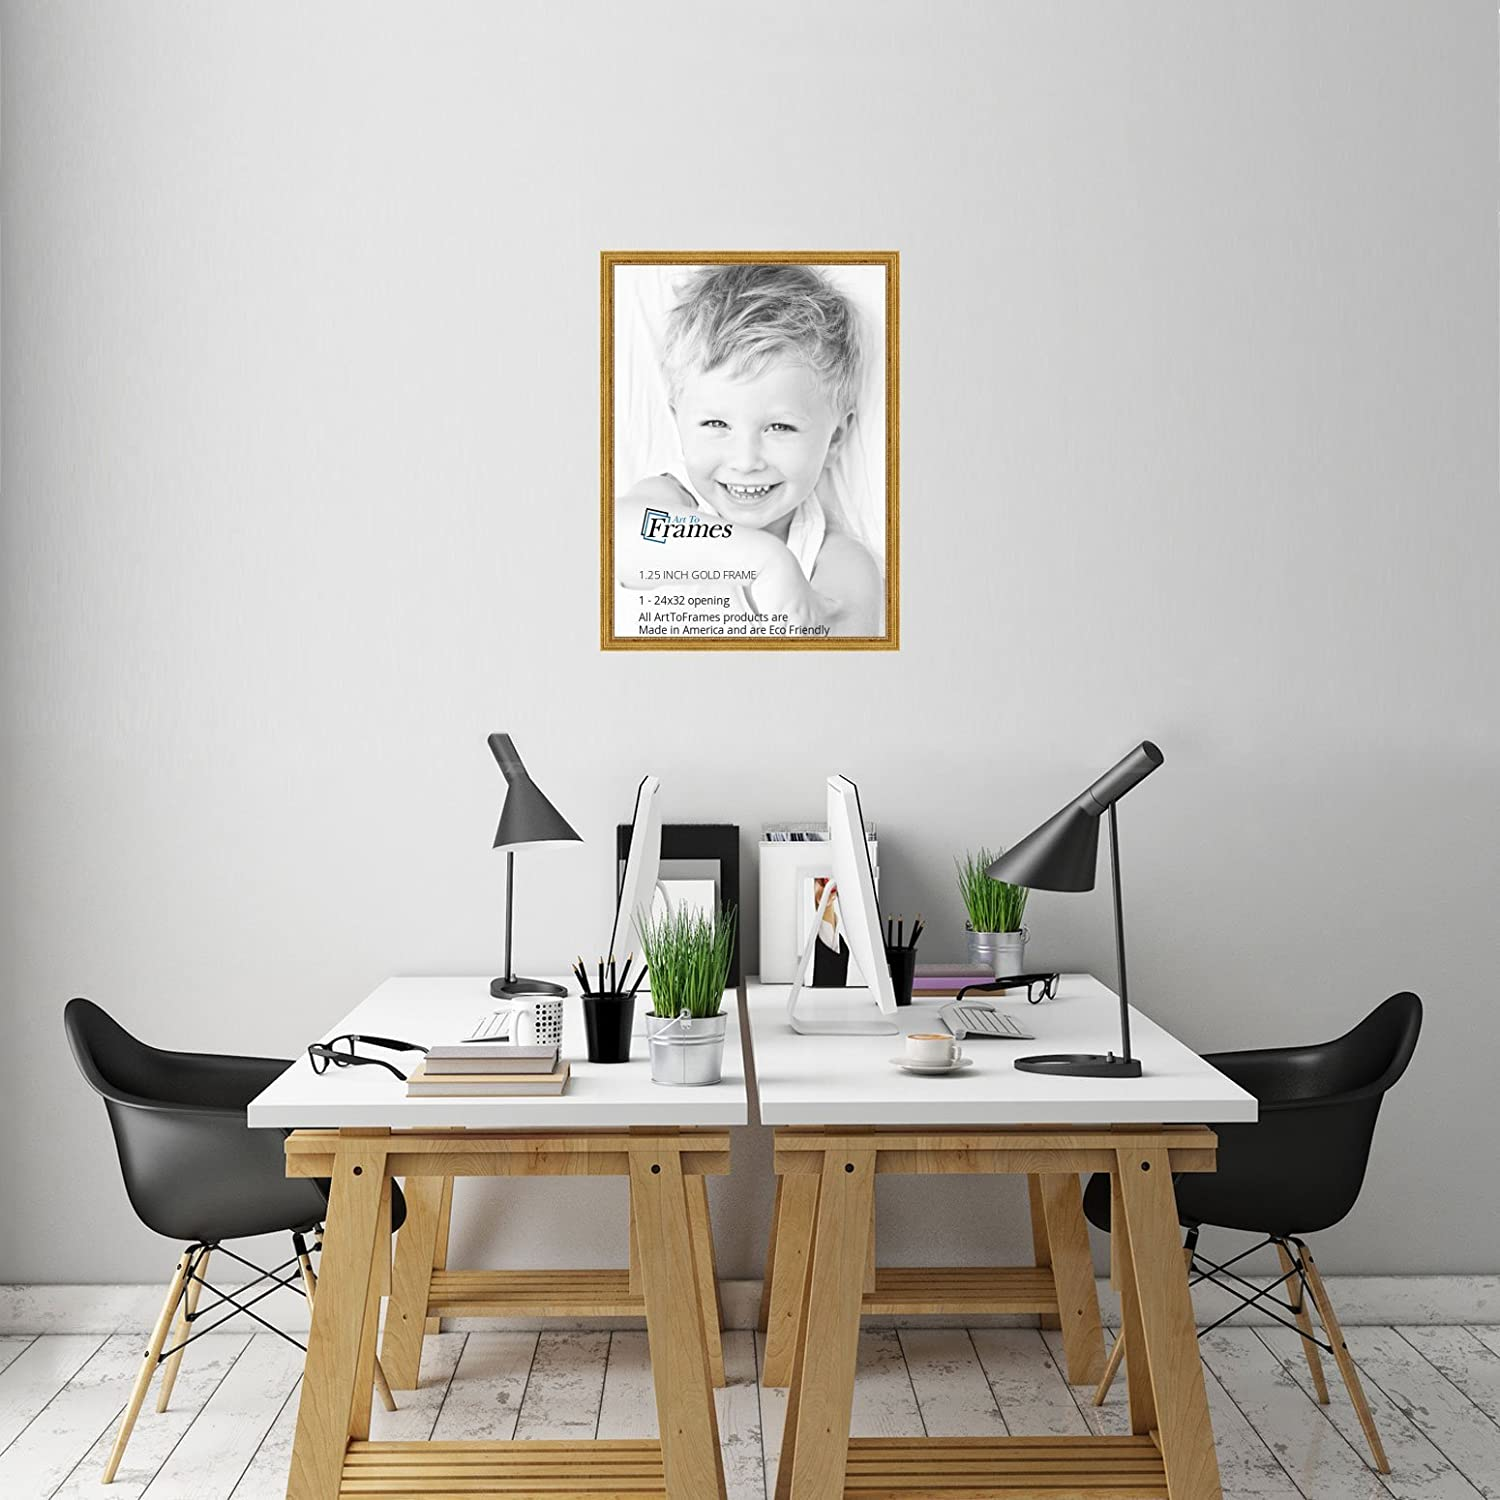 Amazon.com - ArtToFrames 24x32 inch Gold Foil on Pine Wood Picture ...